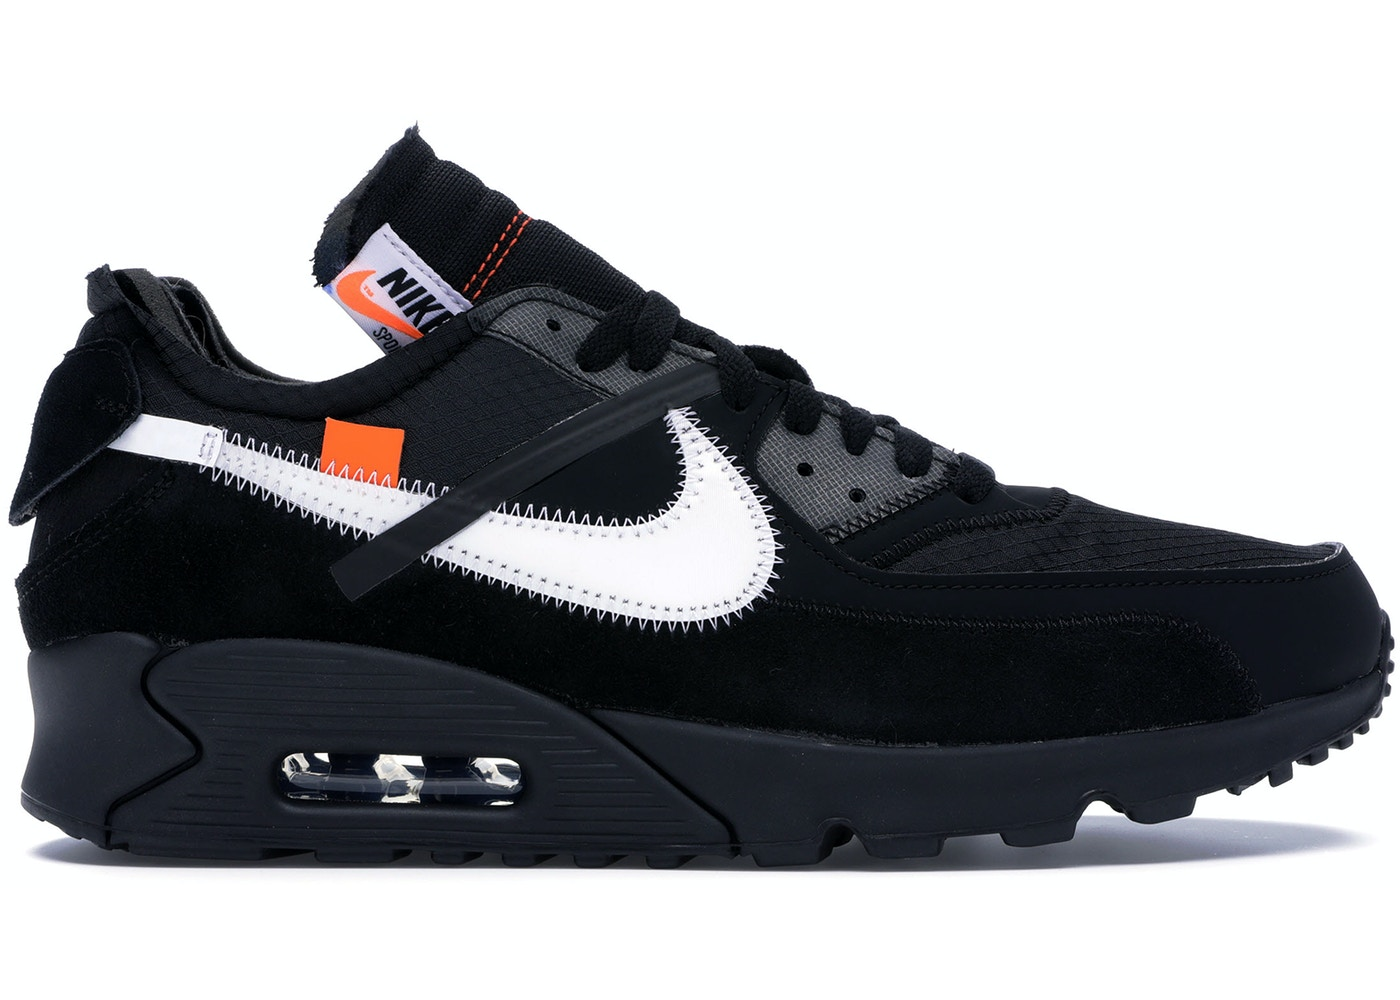 978b2a00 Air Max 90 OFF-WHITE Black - AA7293-001